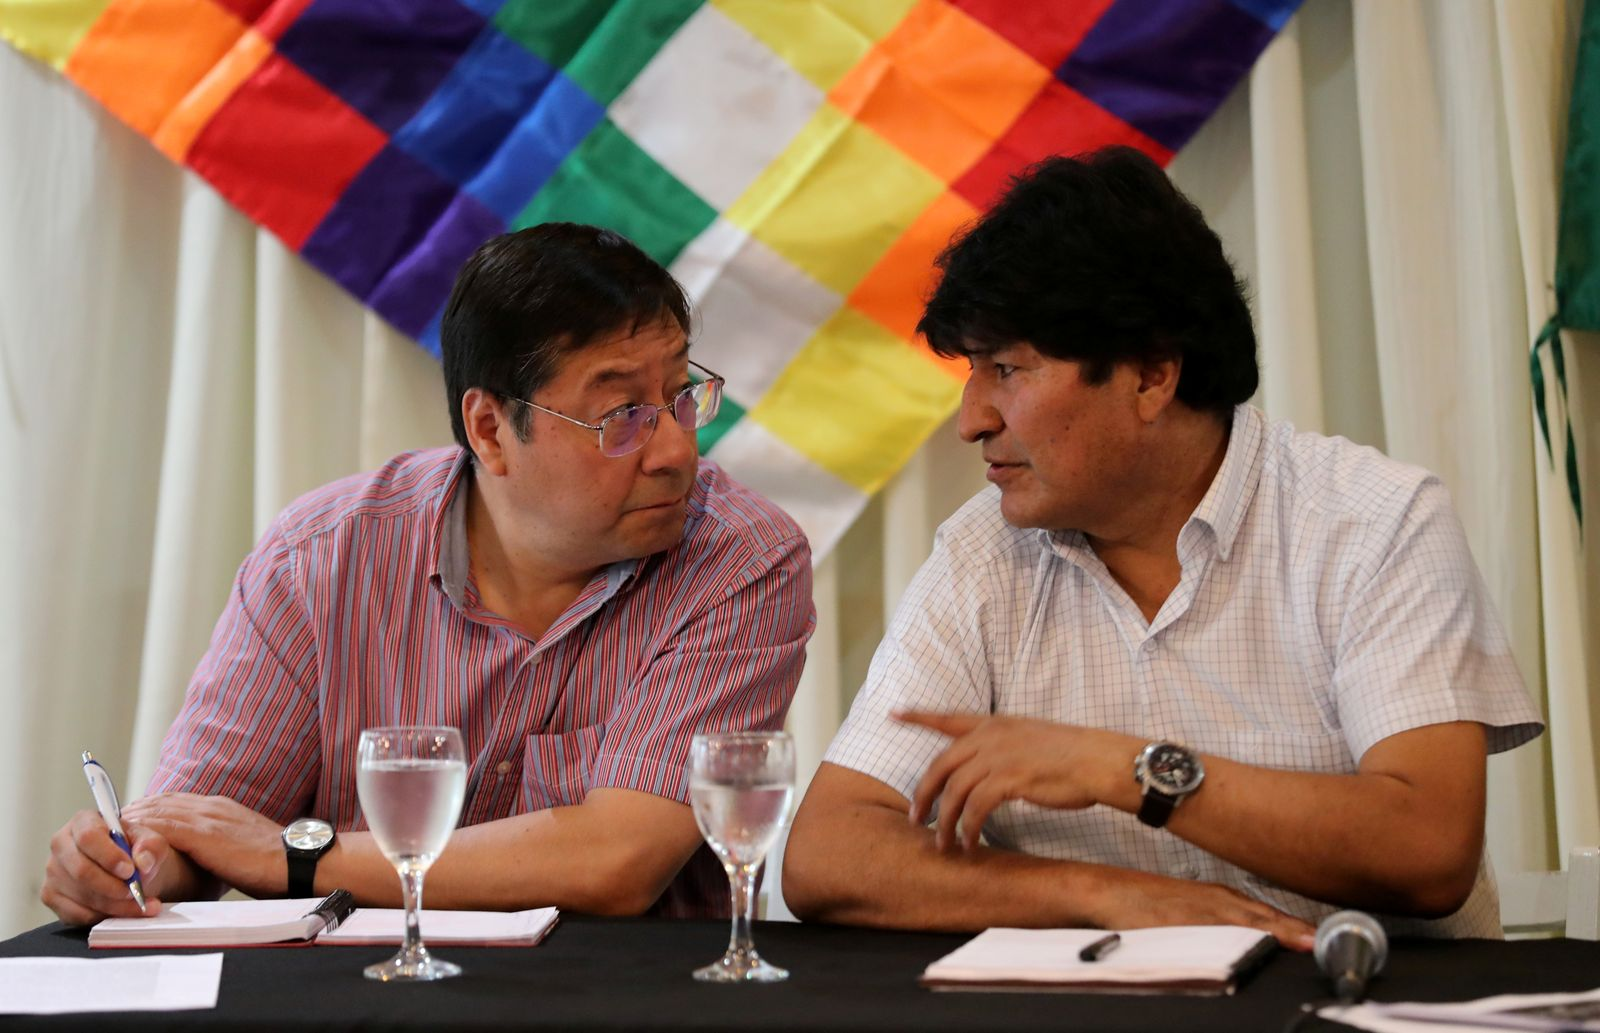 Former Bolivian President Evo Morales speaks to the presidential candidate for the Movement to Socialism party (MAS) Luis Arce Catacora during a meeting of their party, in Buenos Aires